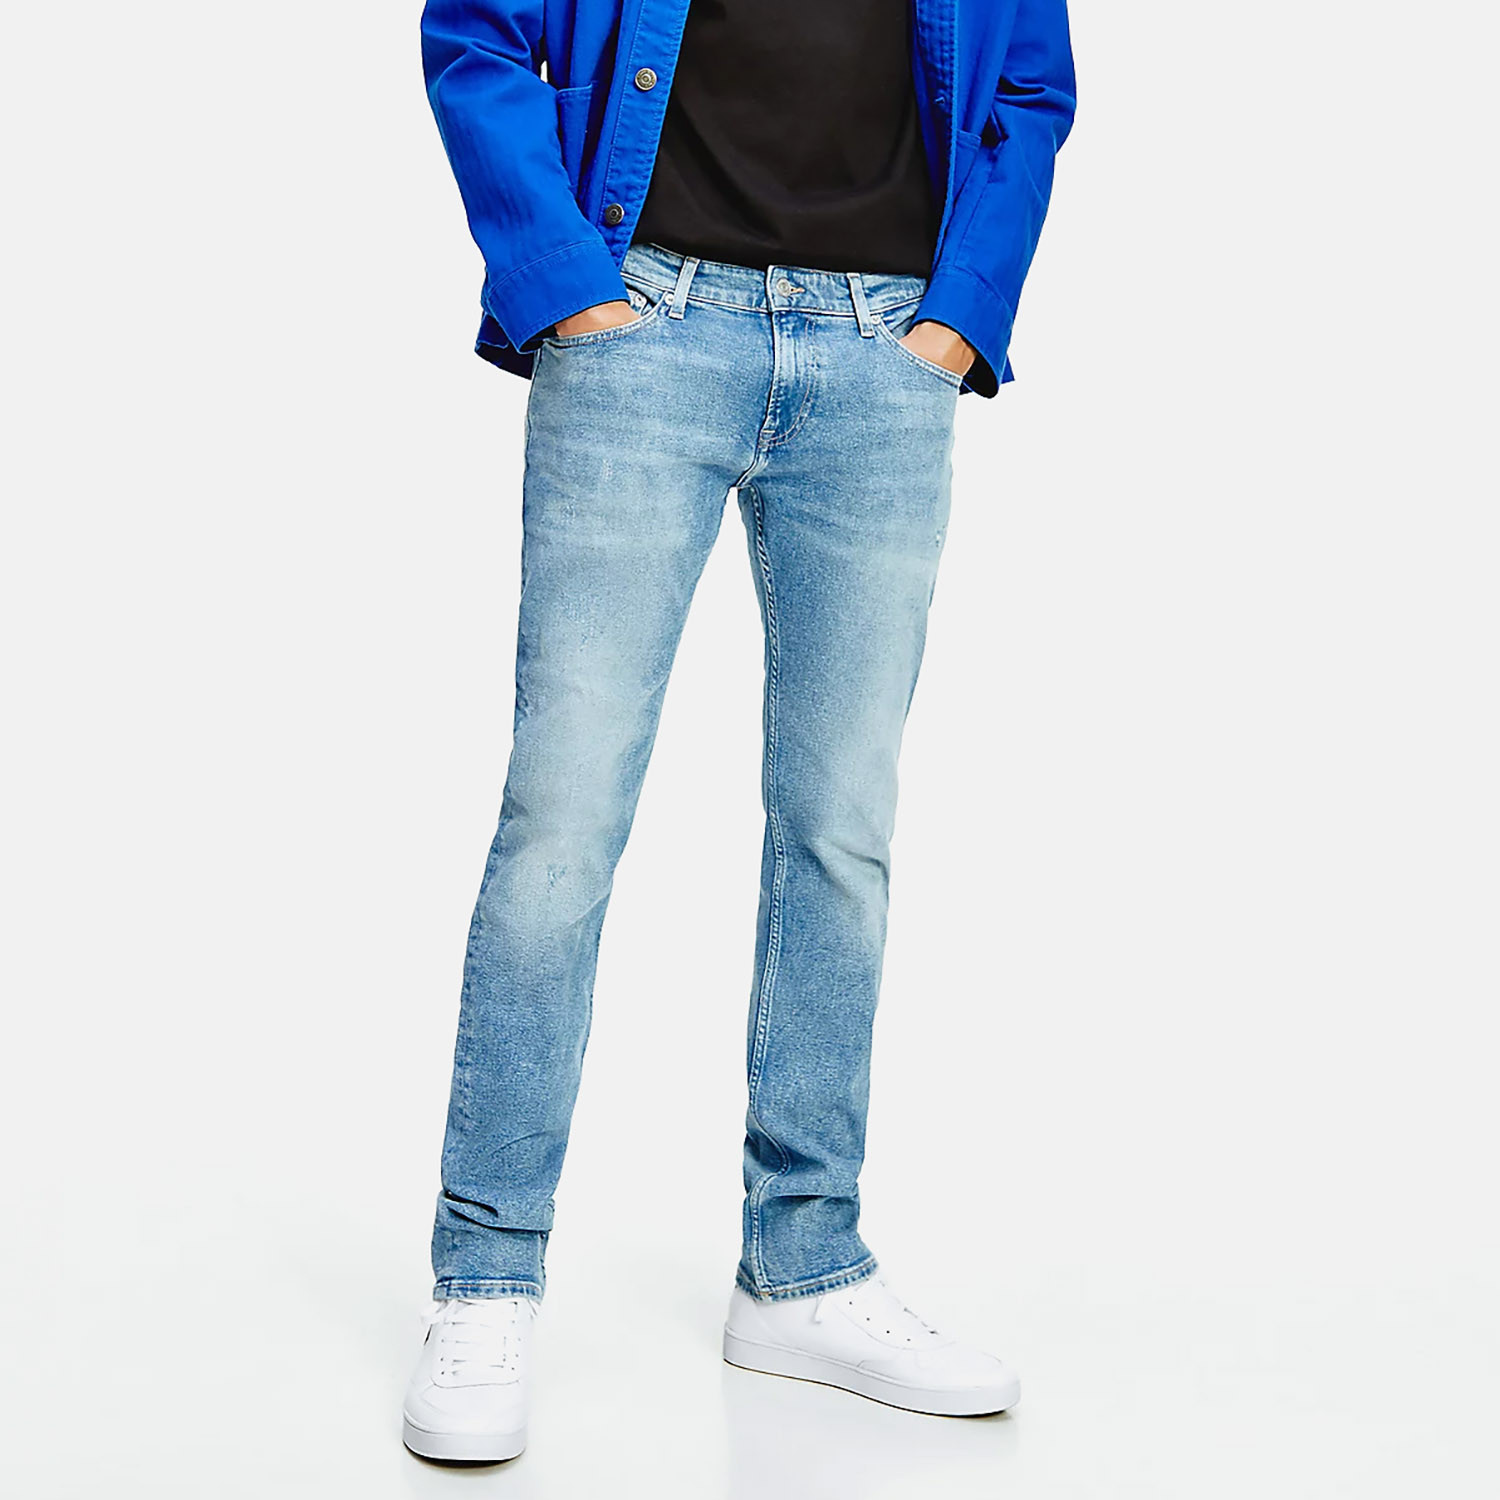 Tommy Jeans Scanton Slim Distressed Ανδρικό Παντελόνι (Μήκος 32L) (9000074771_51880)